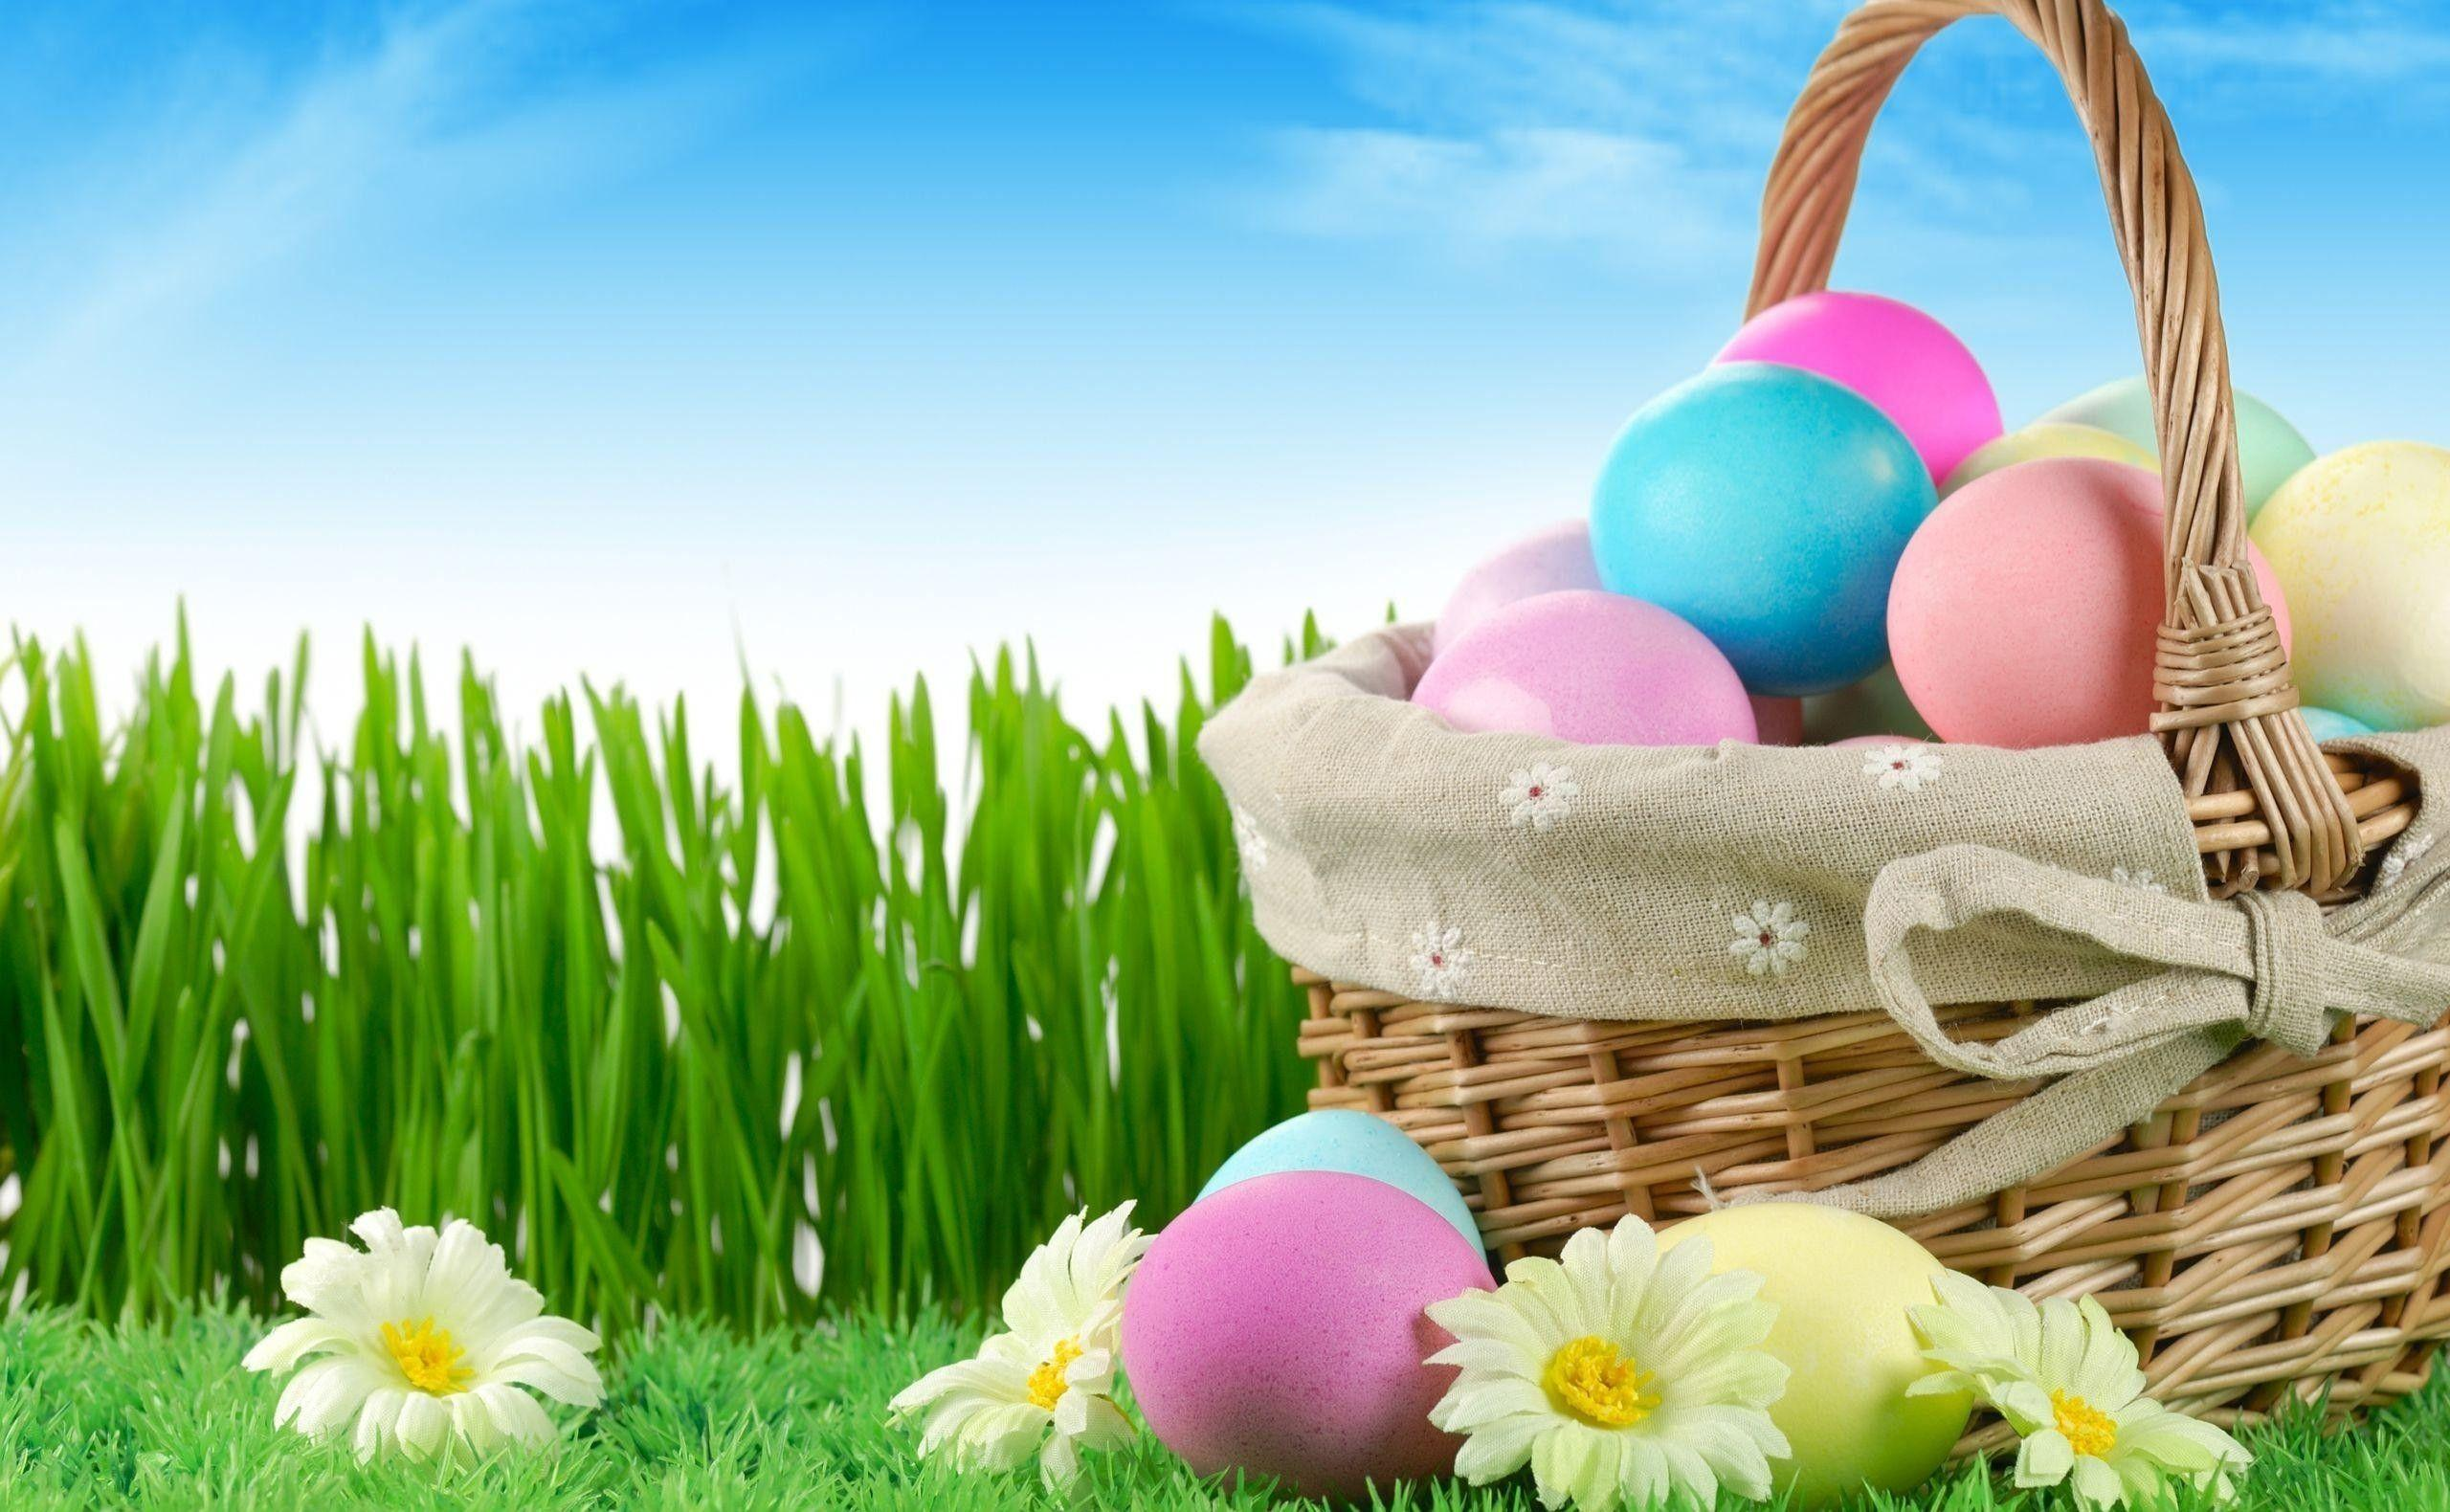 easter wallpapers hd - photo #25